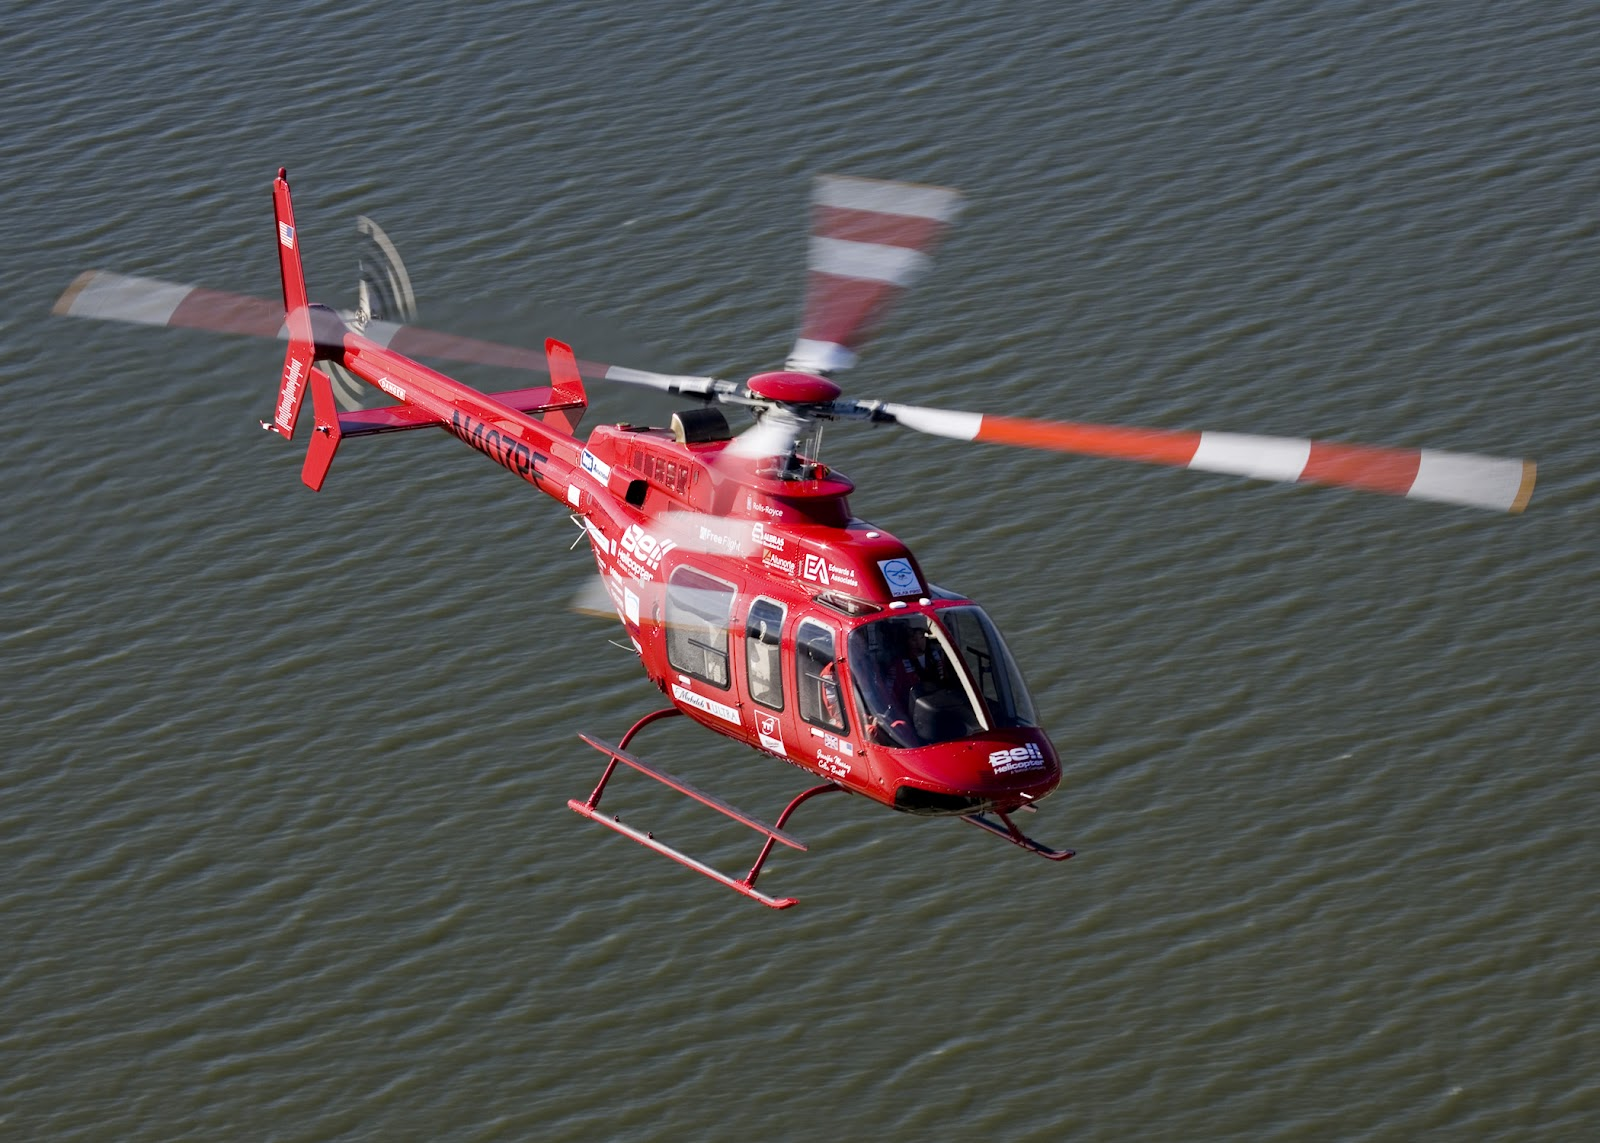 Helicopter Bell 407 Ranger in Red Aircraft Wallpaper 2645 1600x1143